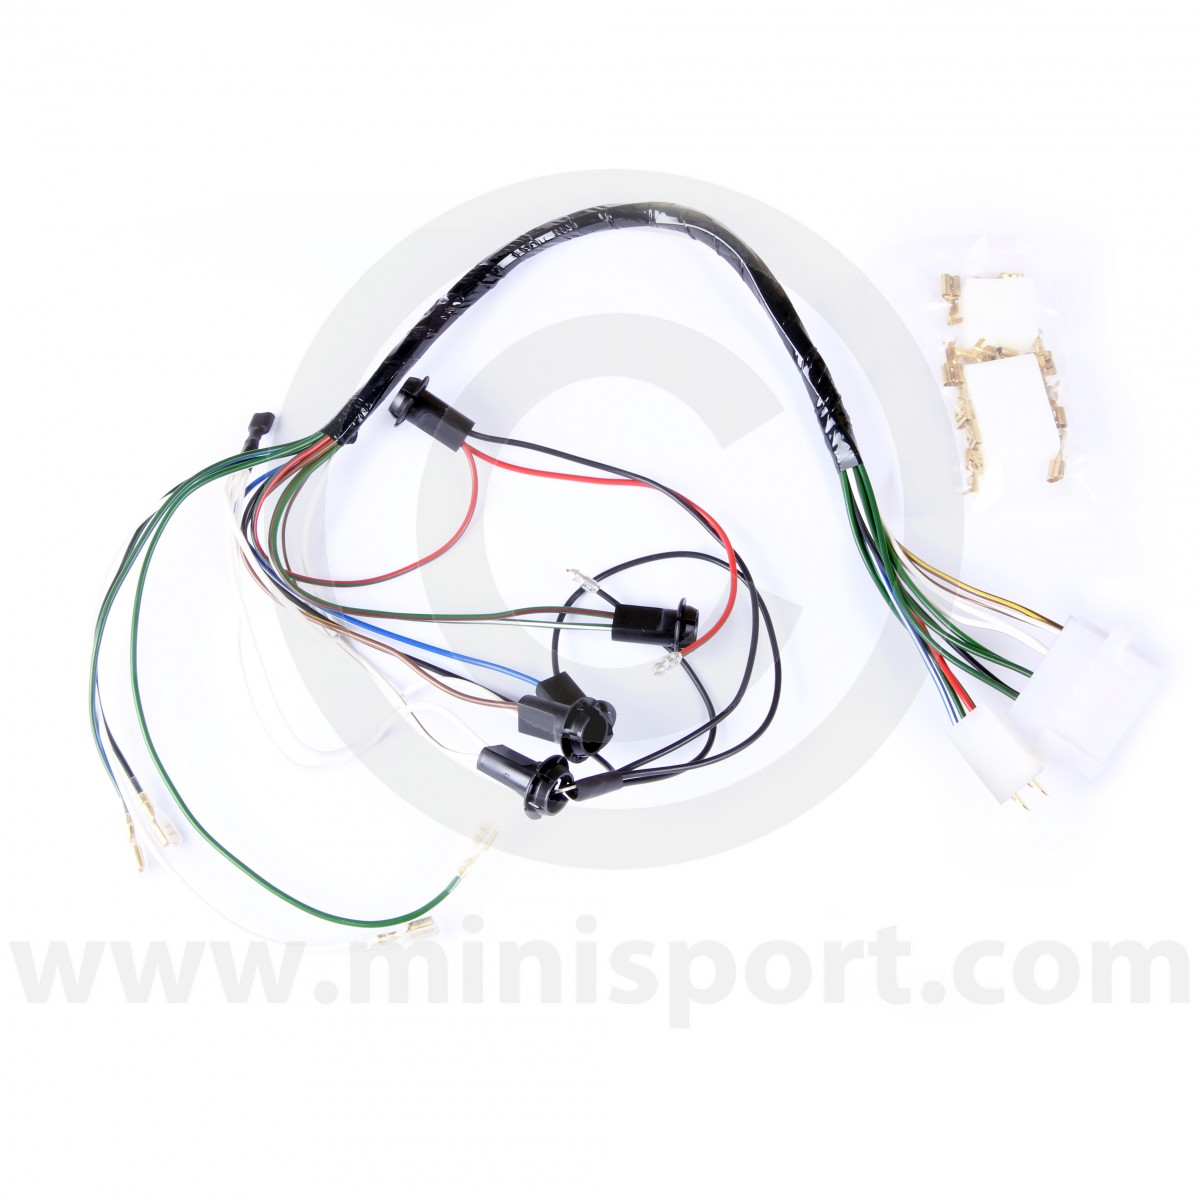 lucees025 mini dash conversion wiring loom minisport com mini rh minisport com mini wiring loom problems mini wiring loom replacement